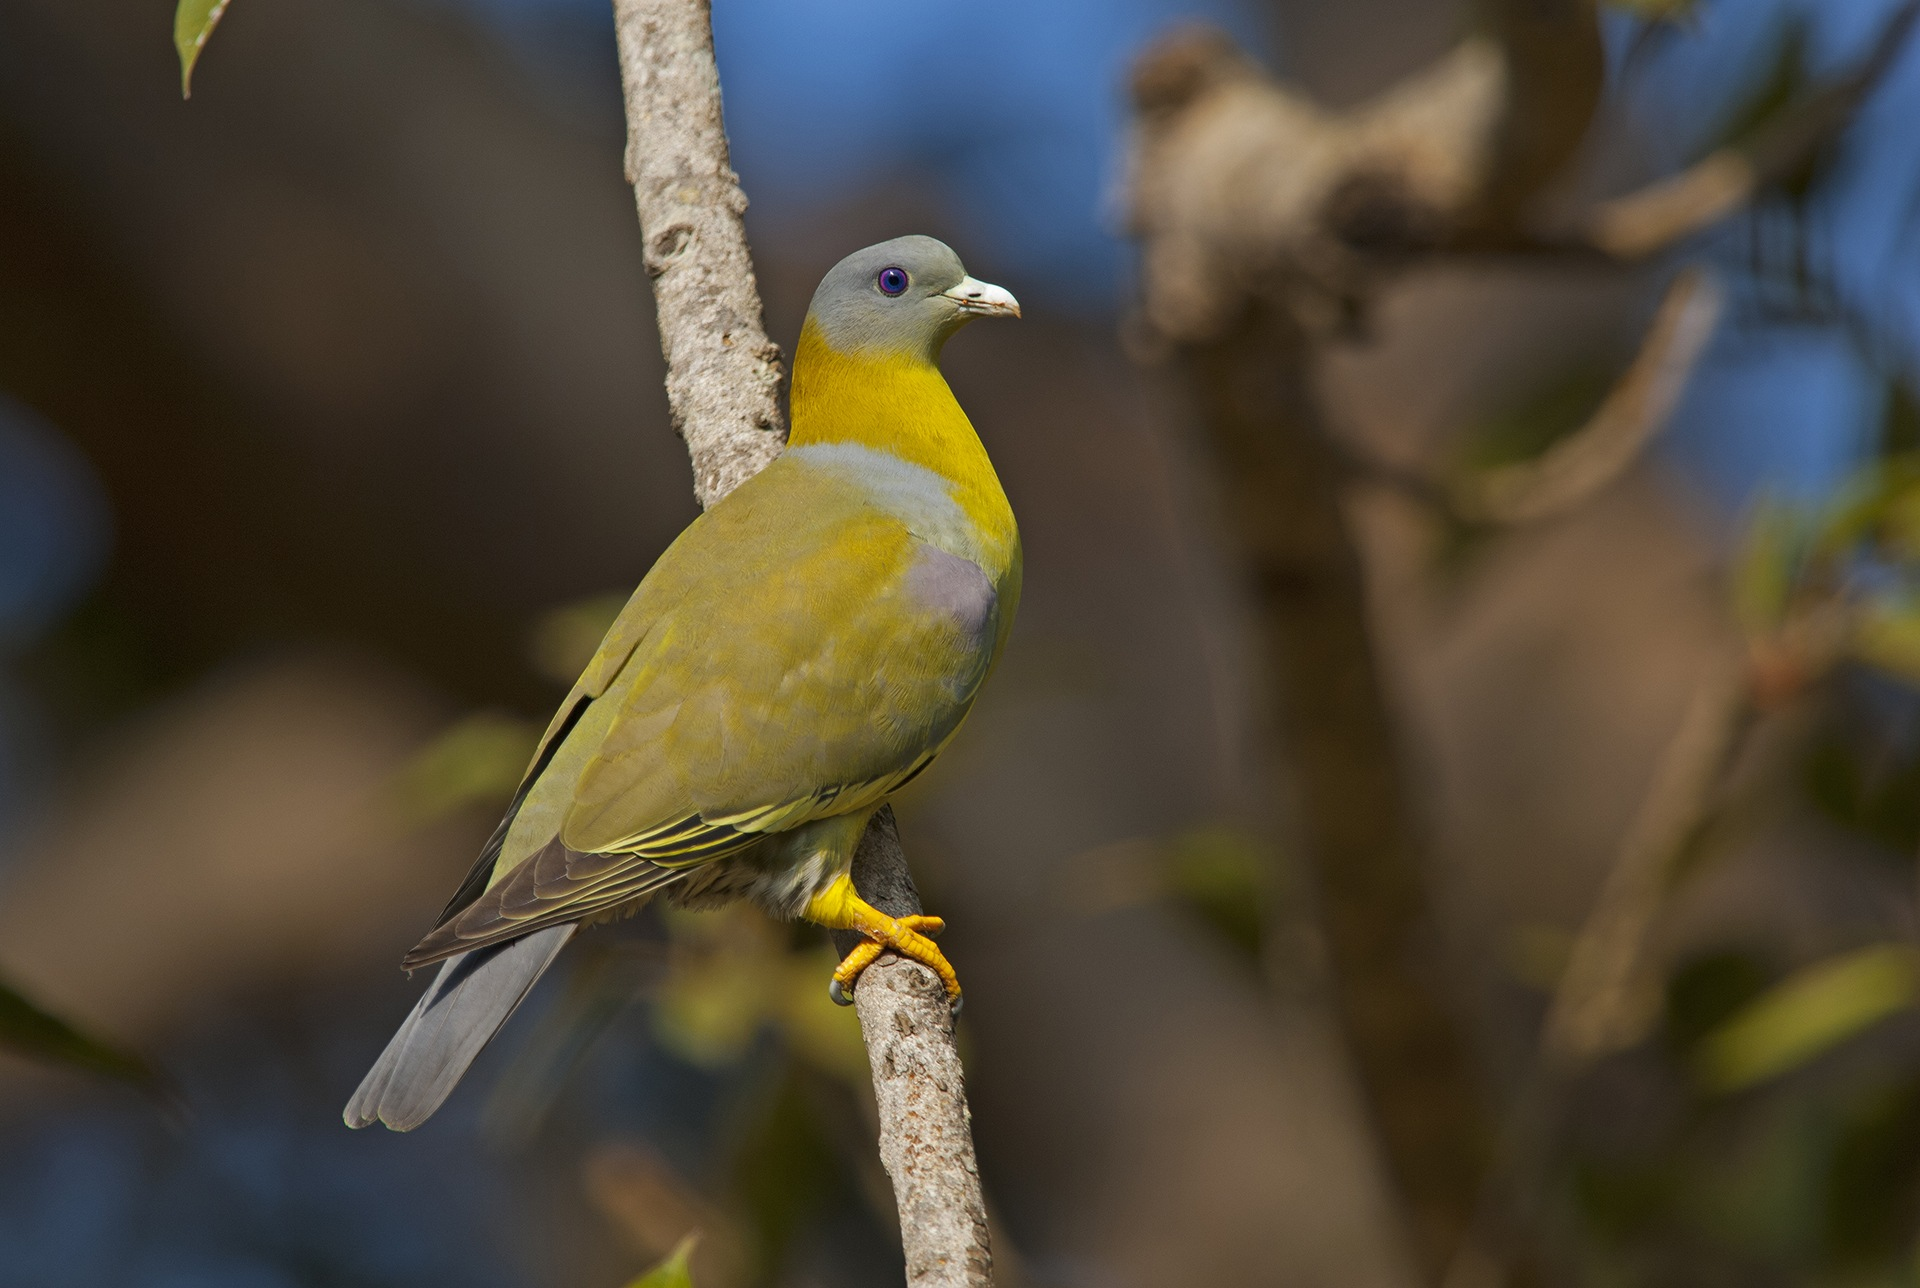 Look up into the branches to spot the yellow-footed green pigeon — a fruit-eating bird commonly seen in Kanha and other Indian jungles. It's also the state bird of Maharashtra.